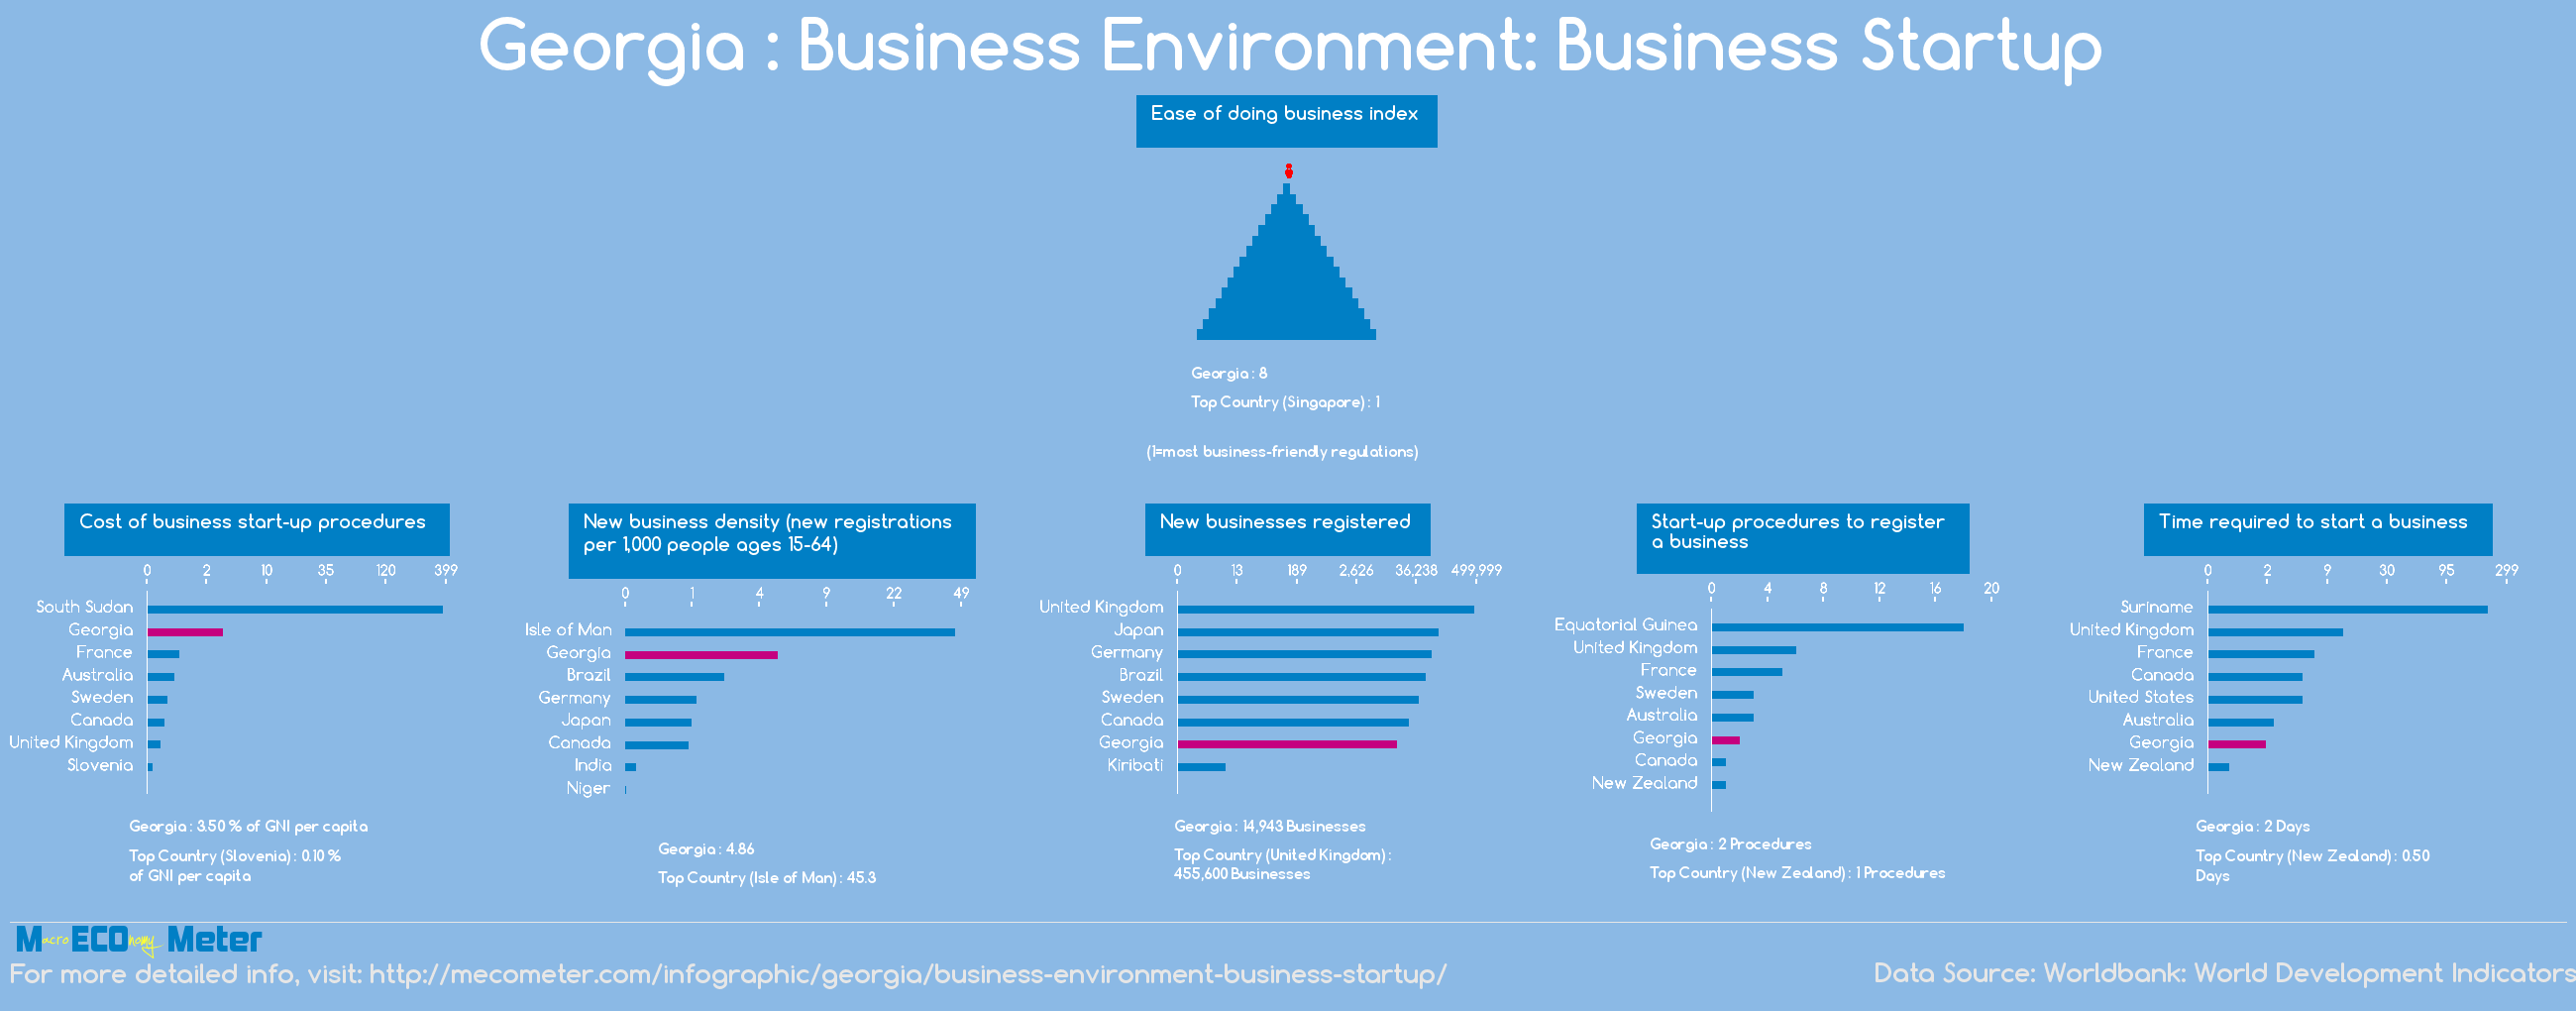 Georgia : Business Environment: Business Startup